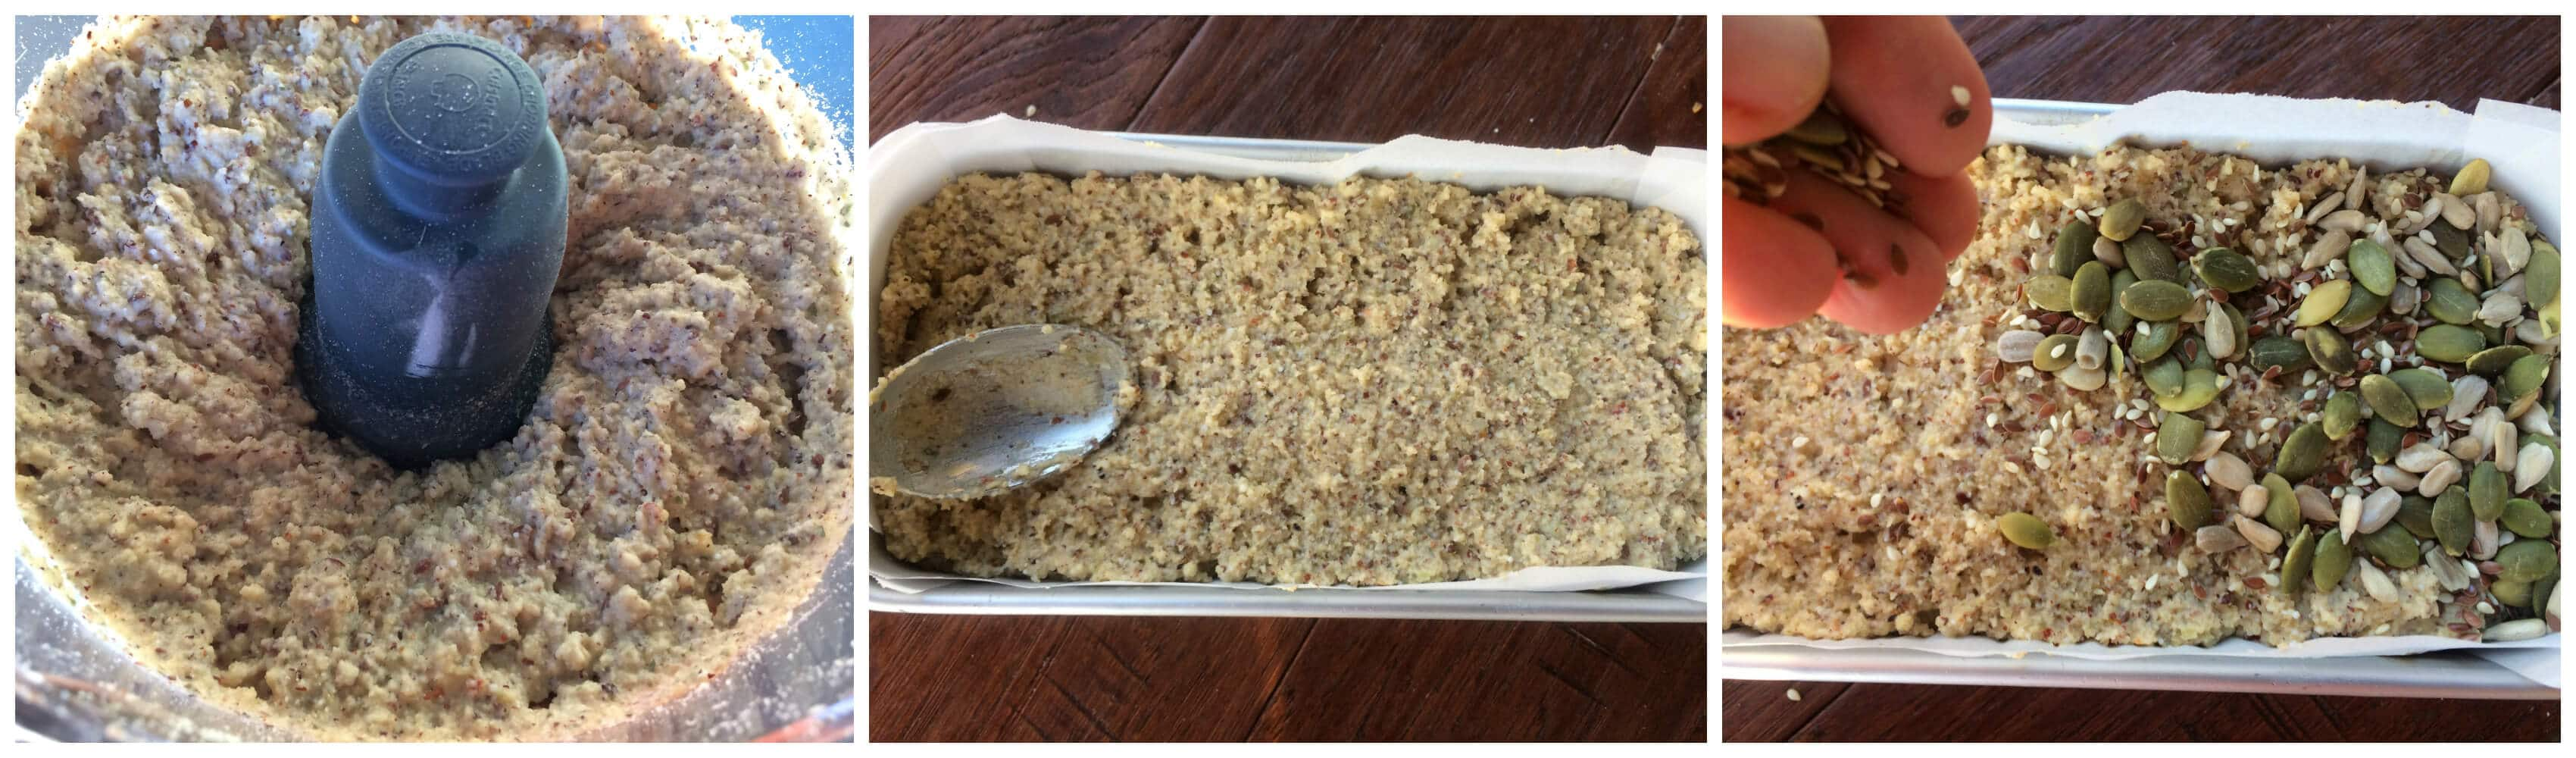 pulsing ingredients in food processor and spooning into loaf pan